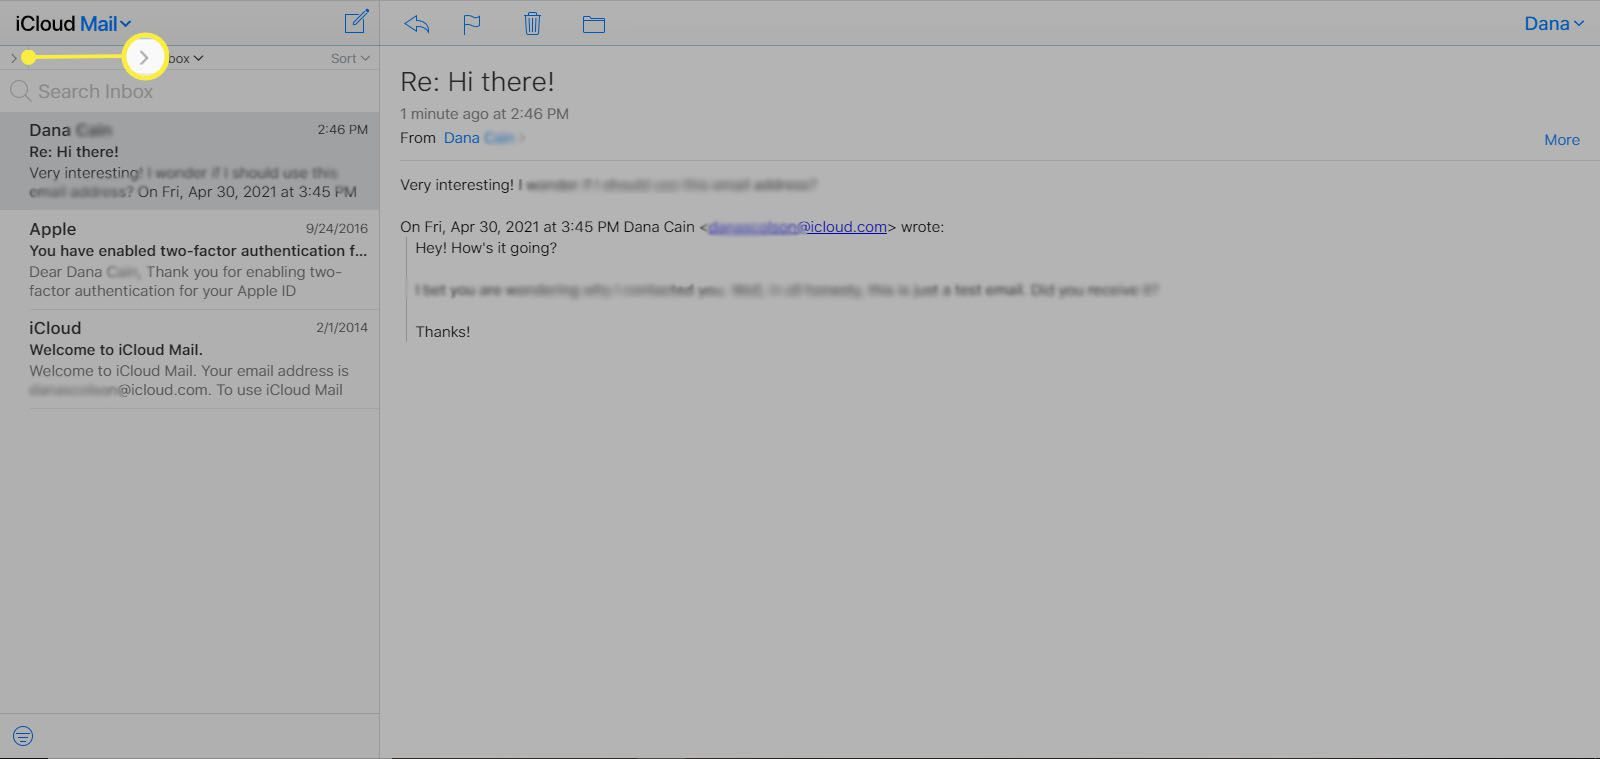 Selecting the right arrow in the upper-left corner of iCloud Mail